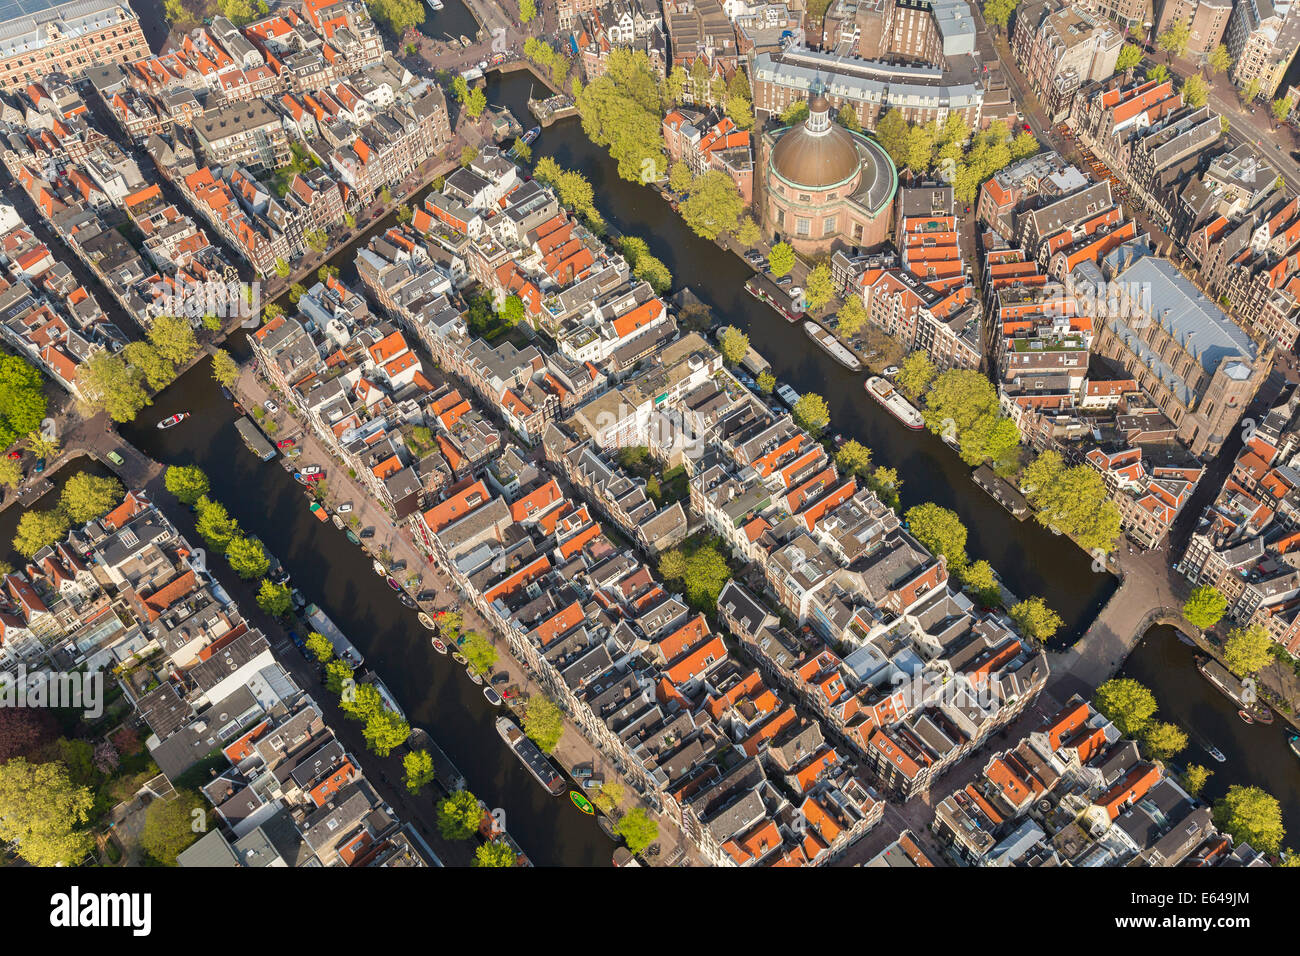 Aerial view of Amsterdam, Holland, Netherlands - Stock Image